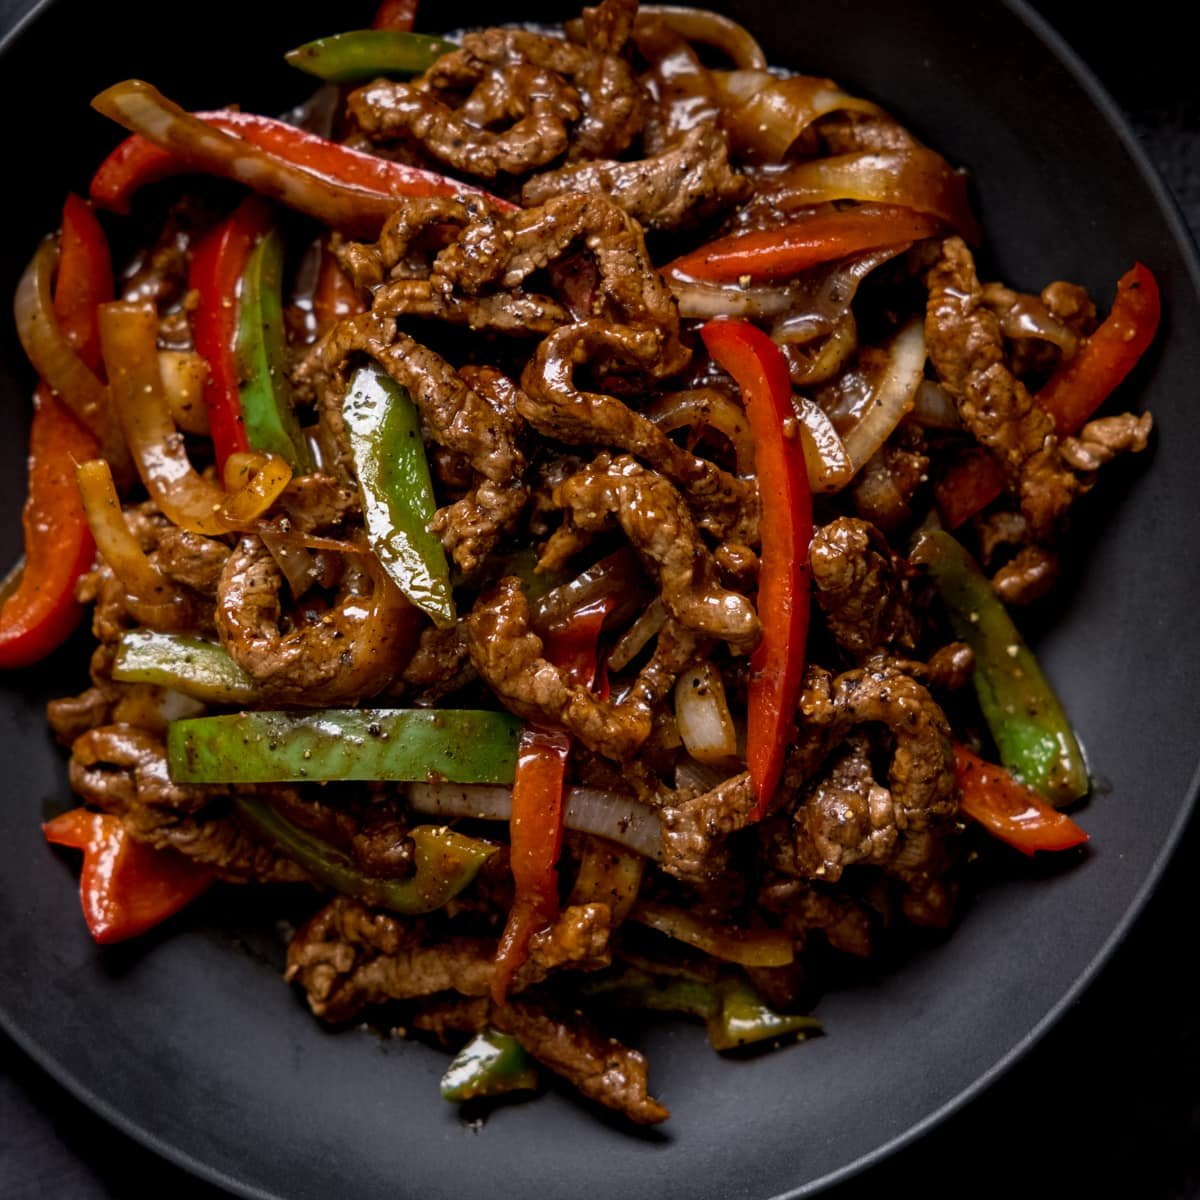 Black pepper beef stir fry with red and green peppers in a black bowl